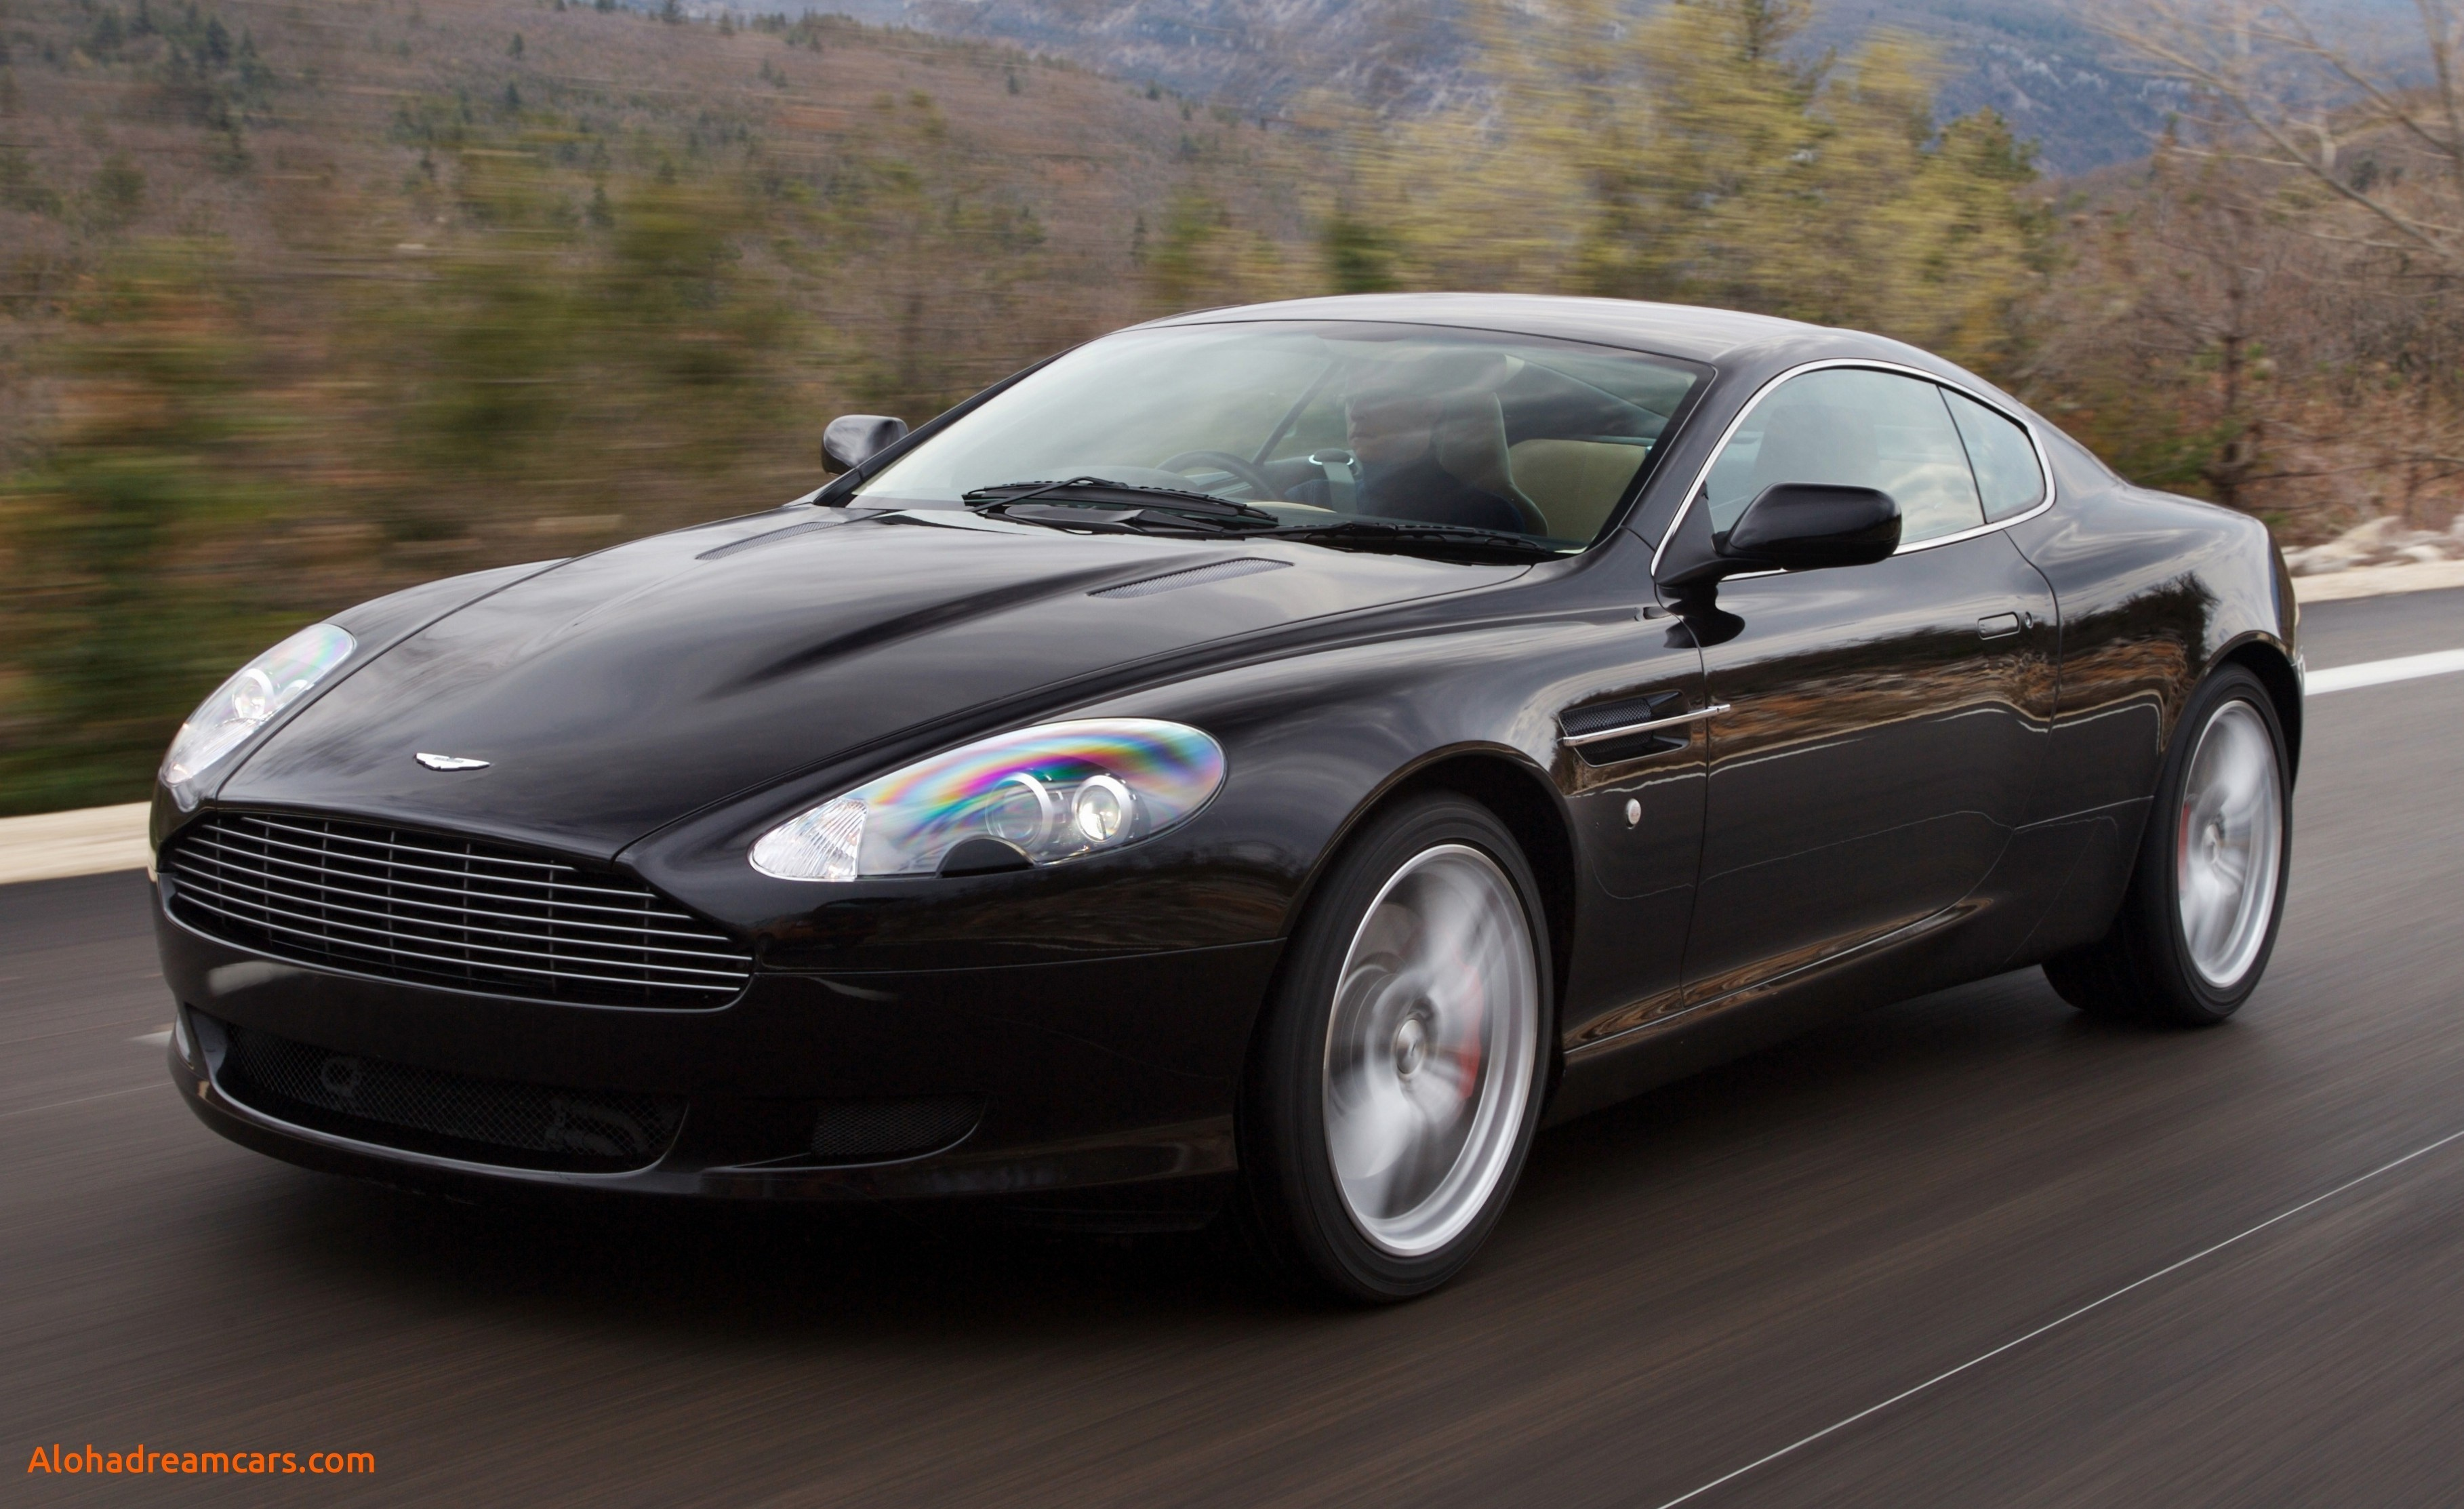 2019 aston Martin Db9 2019 aston Martin Db9 Price and Release Date Pin Od Pou…